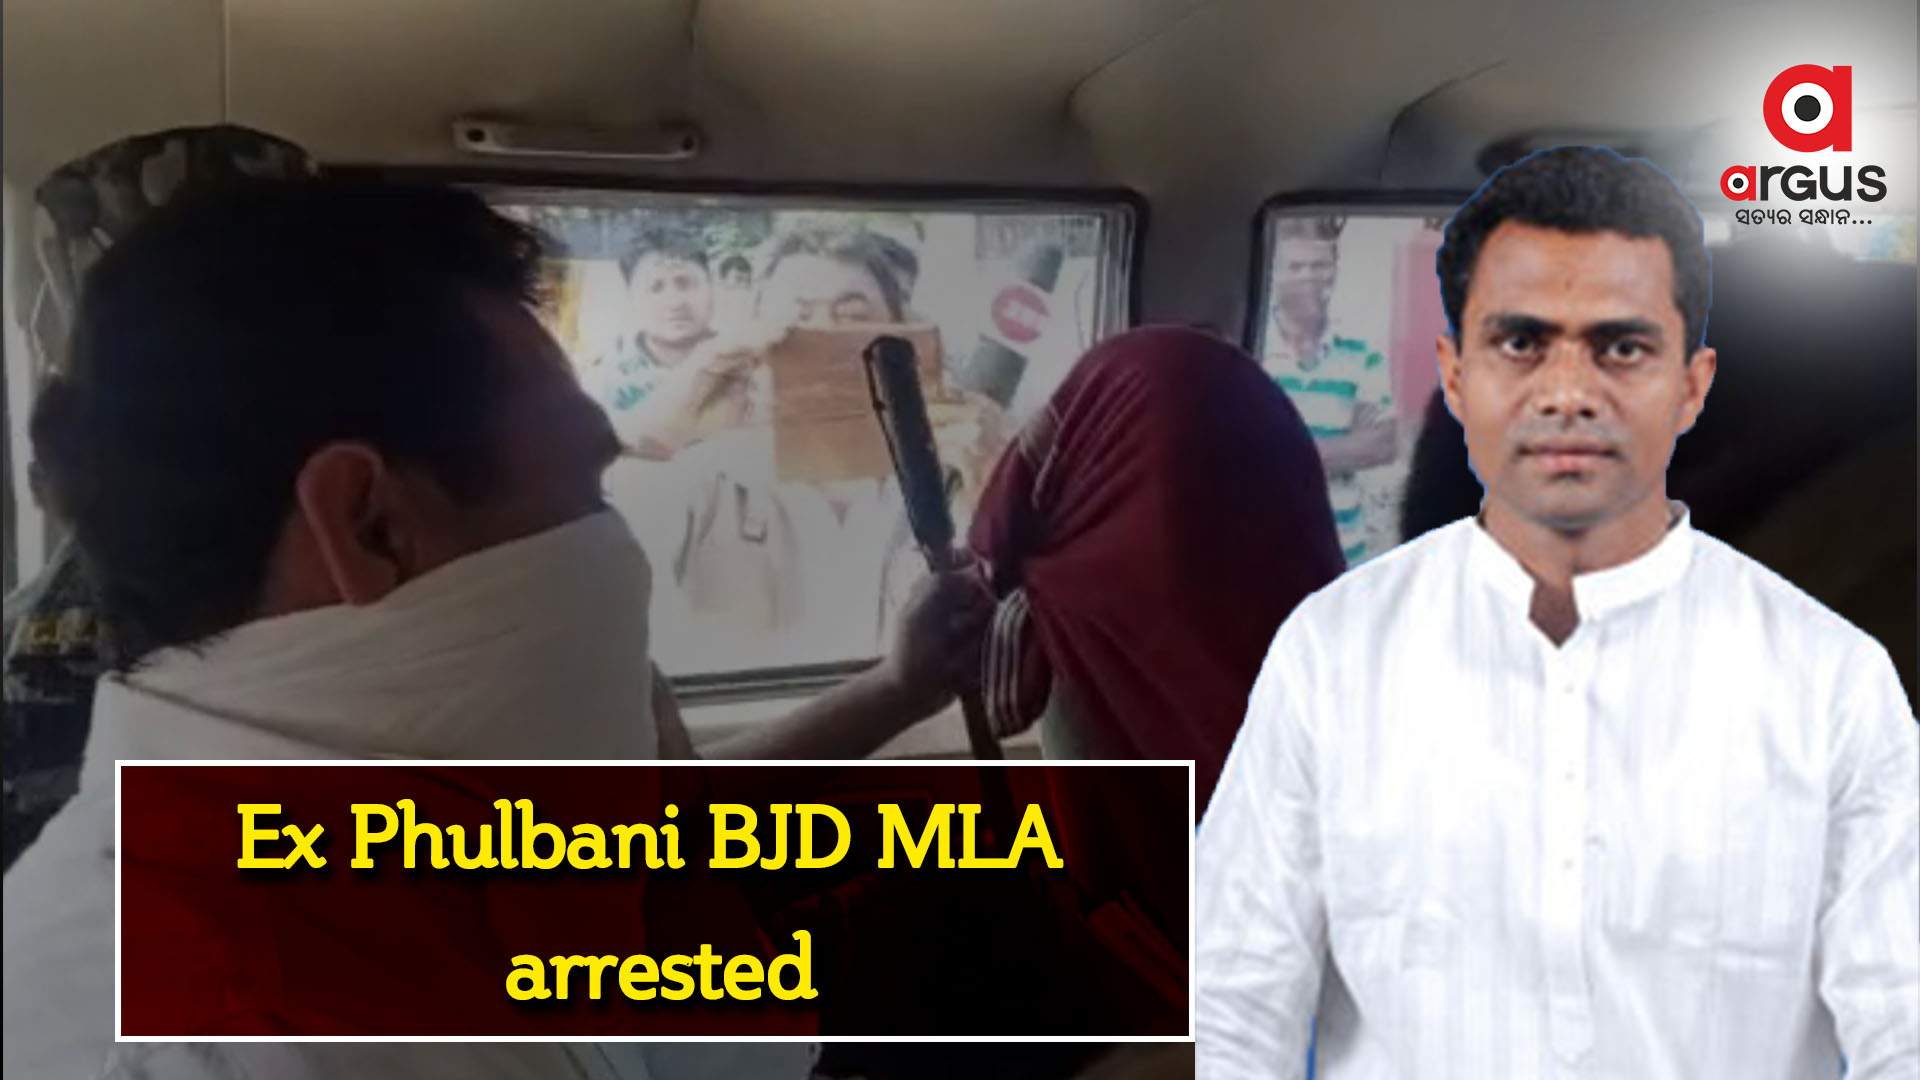 Ex Phulbani BJD MLA, 2 others arrested for loot